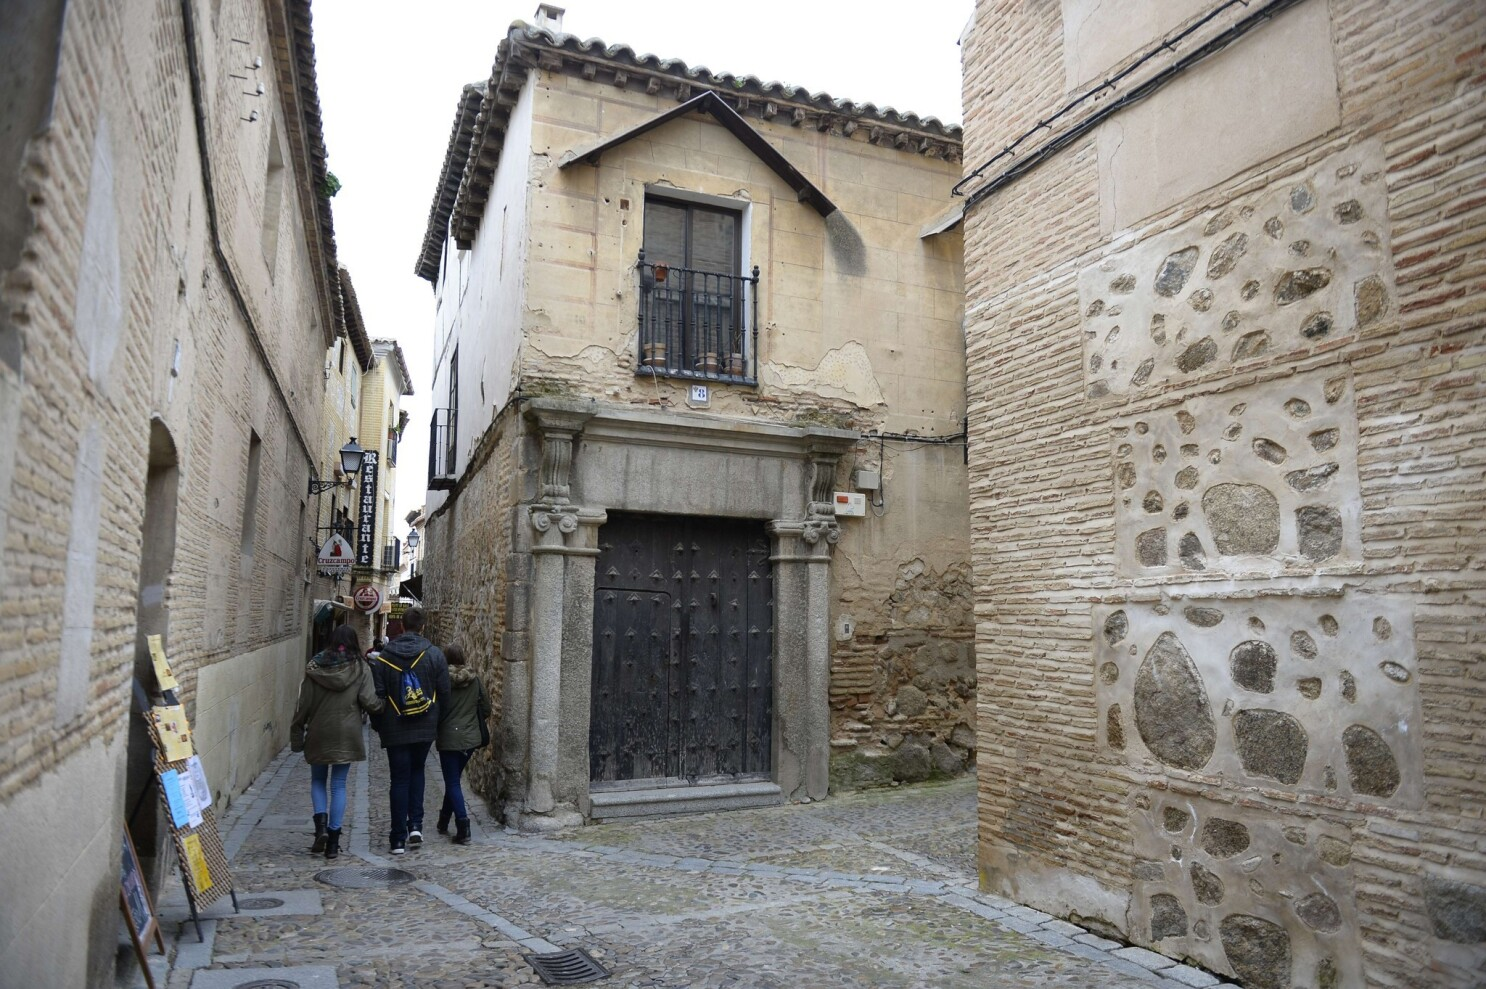 Welcome home, 500 years later: Spain offers citizenship to